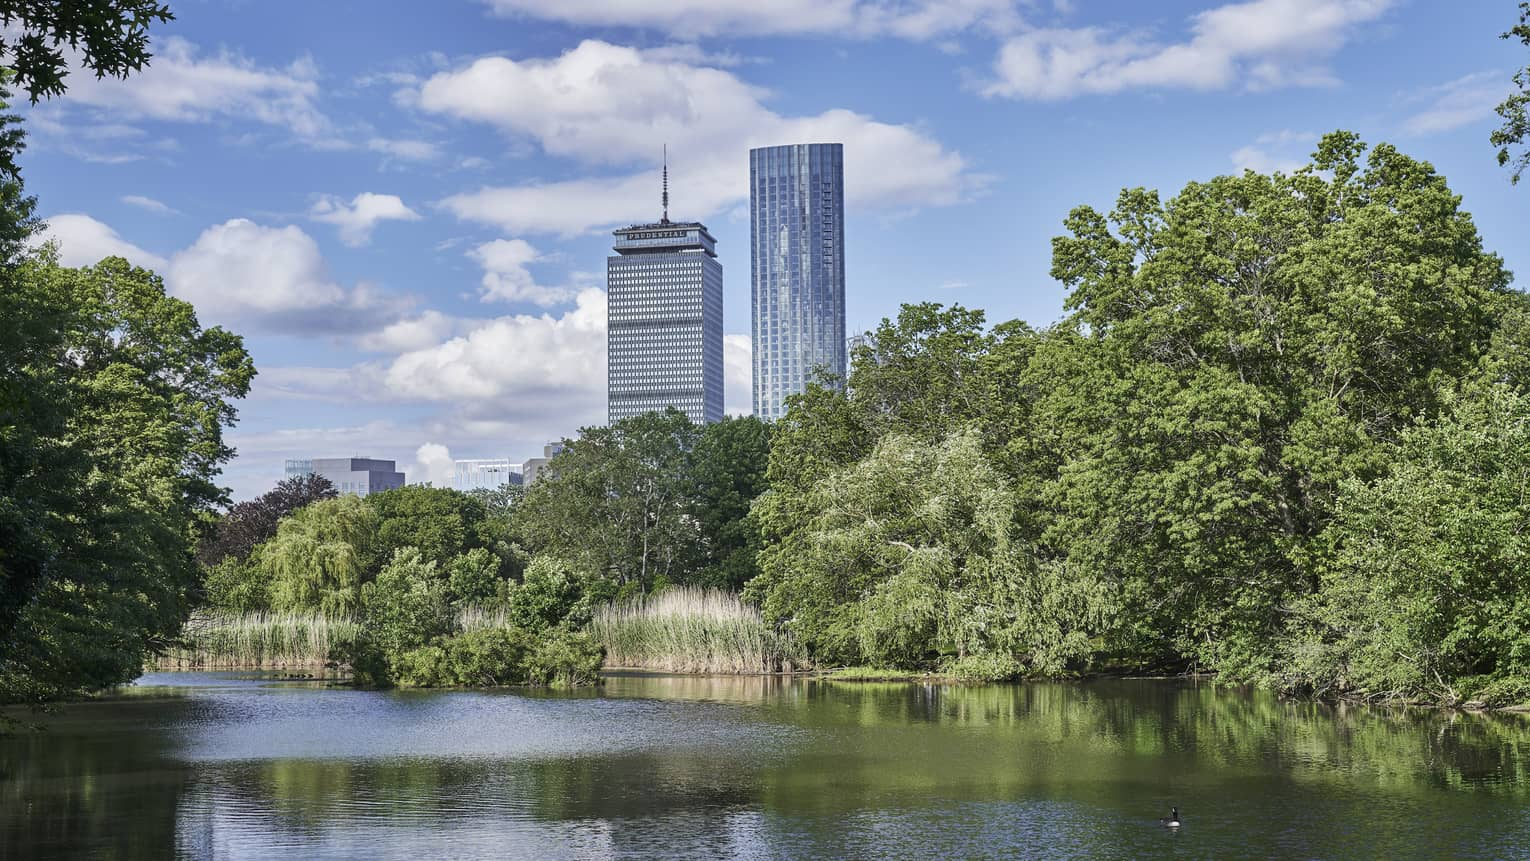 Trees line the river, overlooking downtown boston